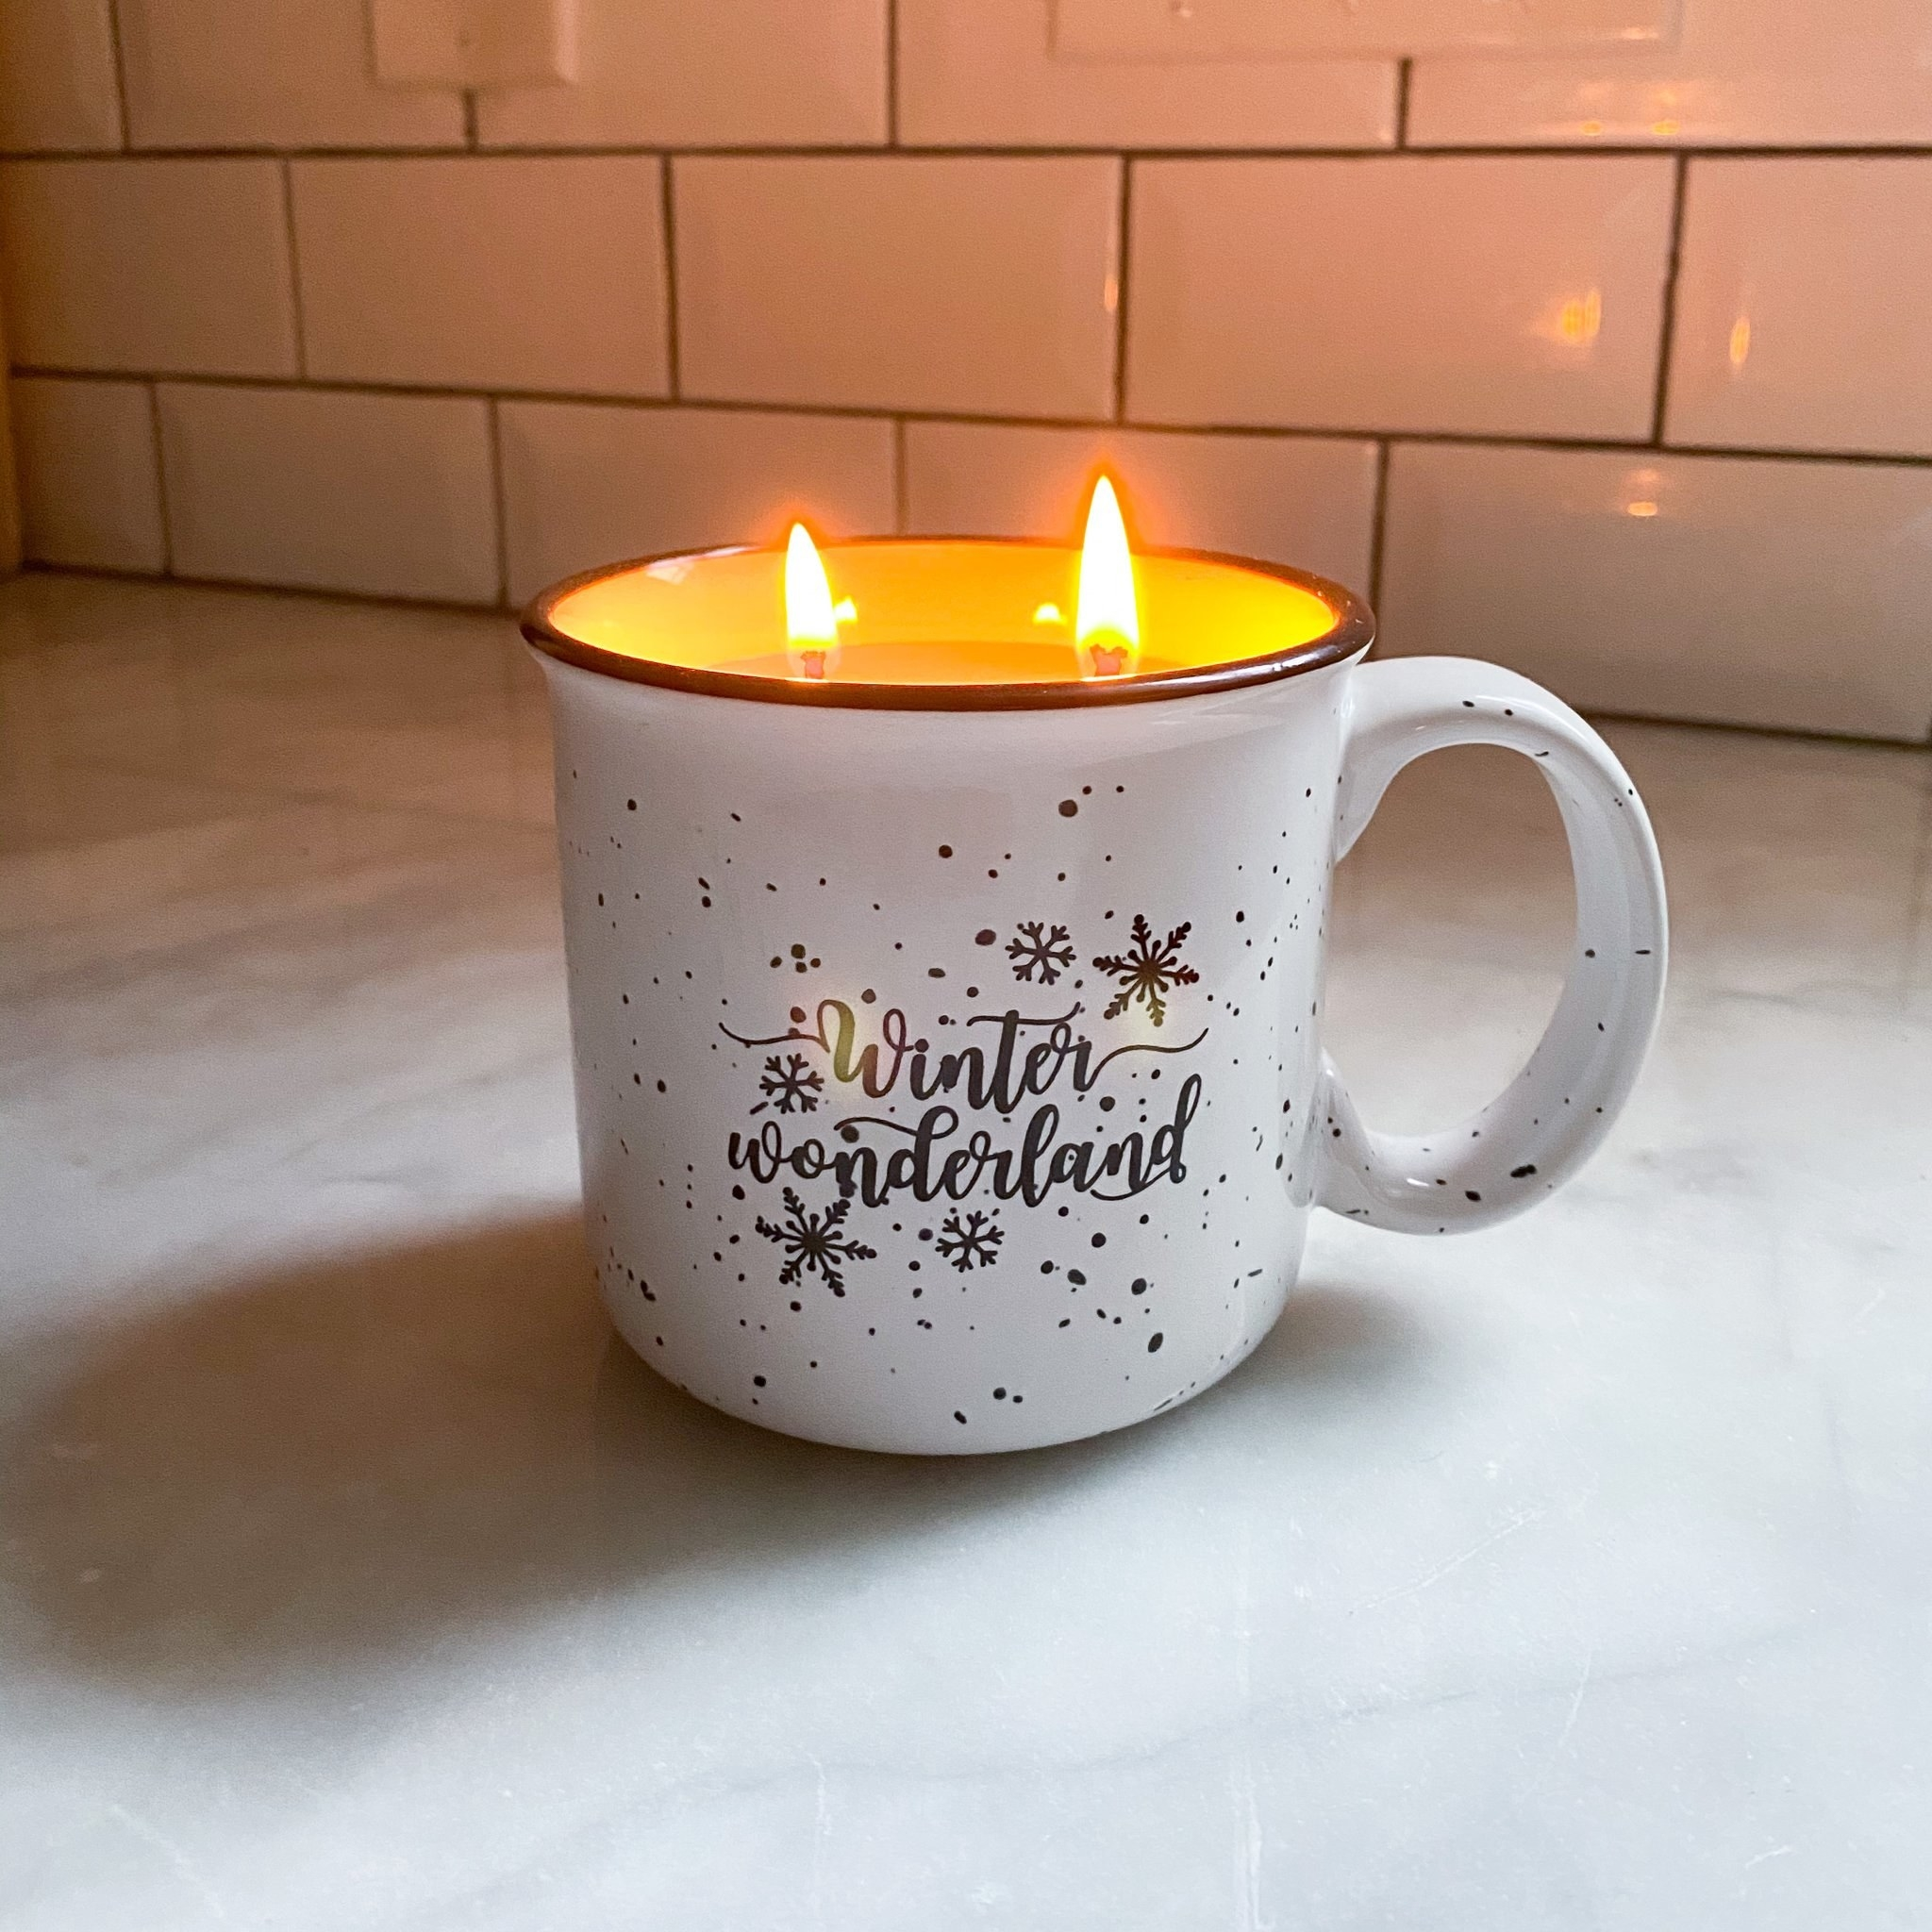 "a white speckled campfire mug that says ""winter wonderland"" on it and has a candle lit inside"